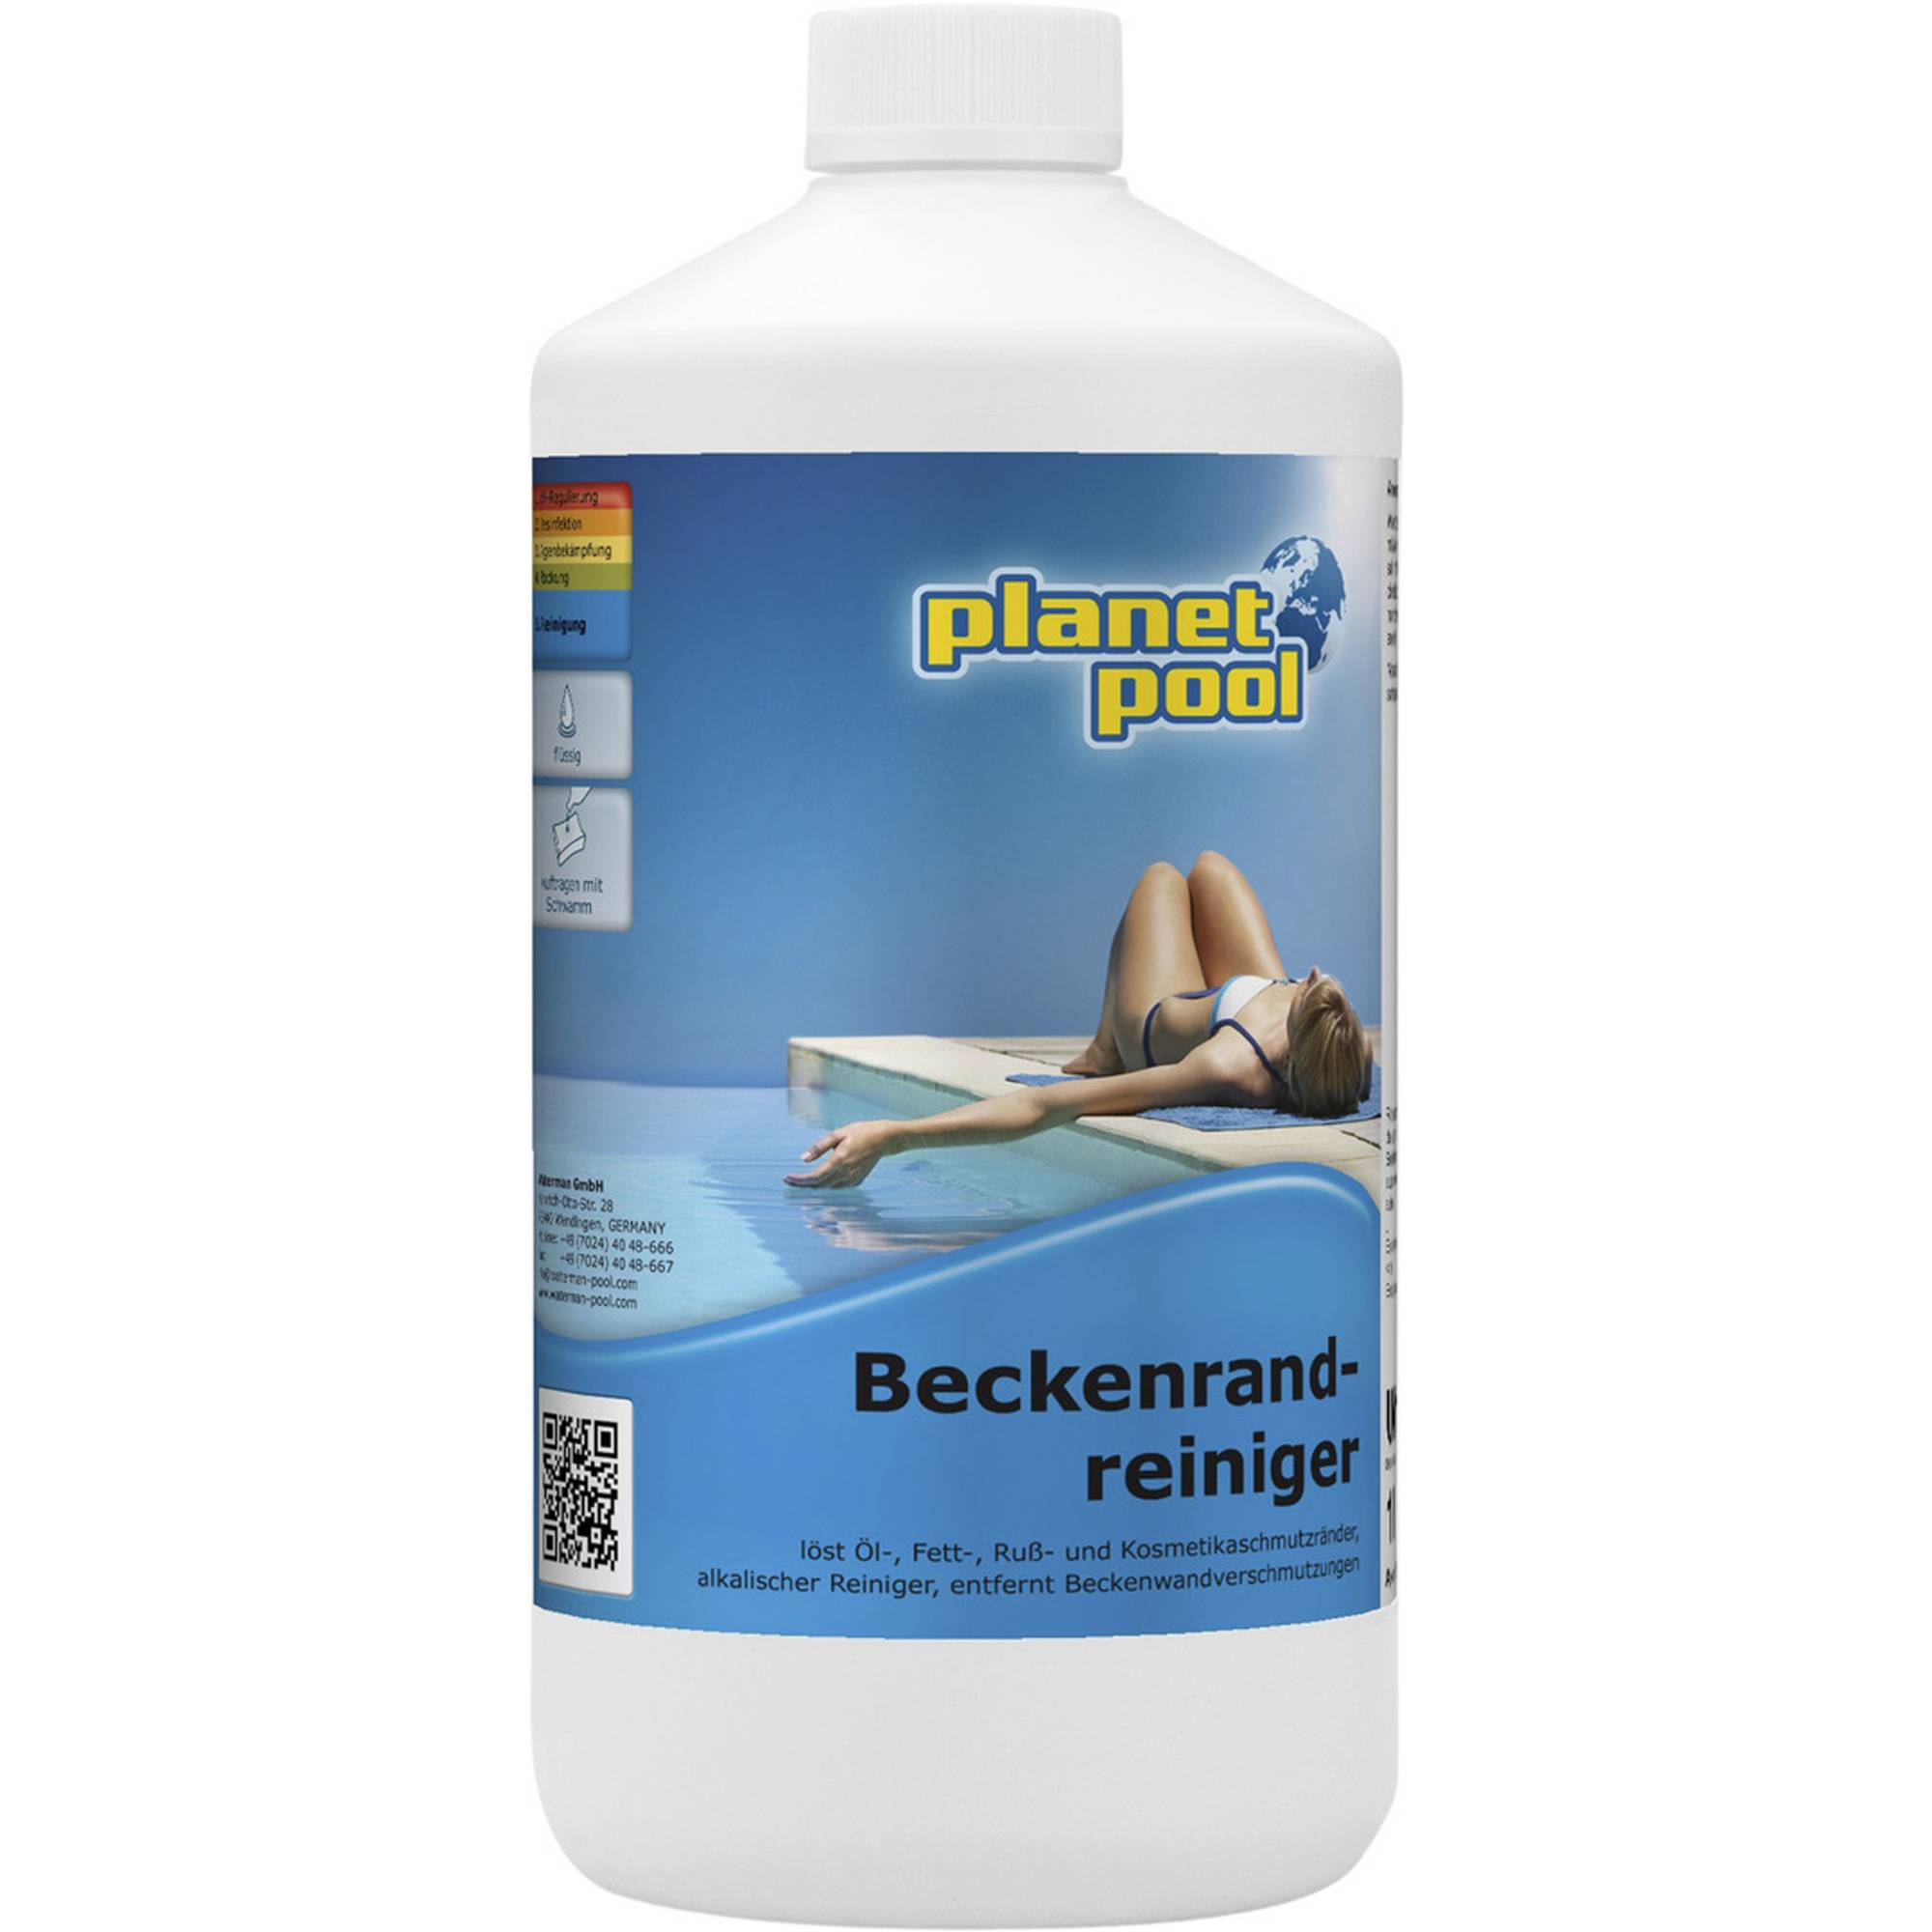 PLANET POOL Beckenrandreiniger 1 Liter